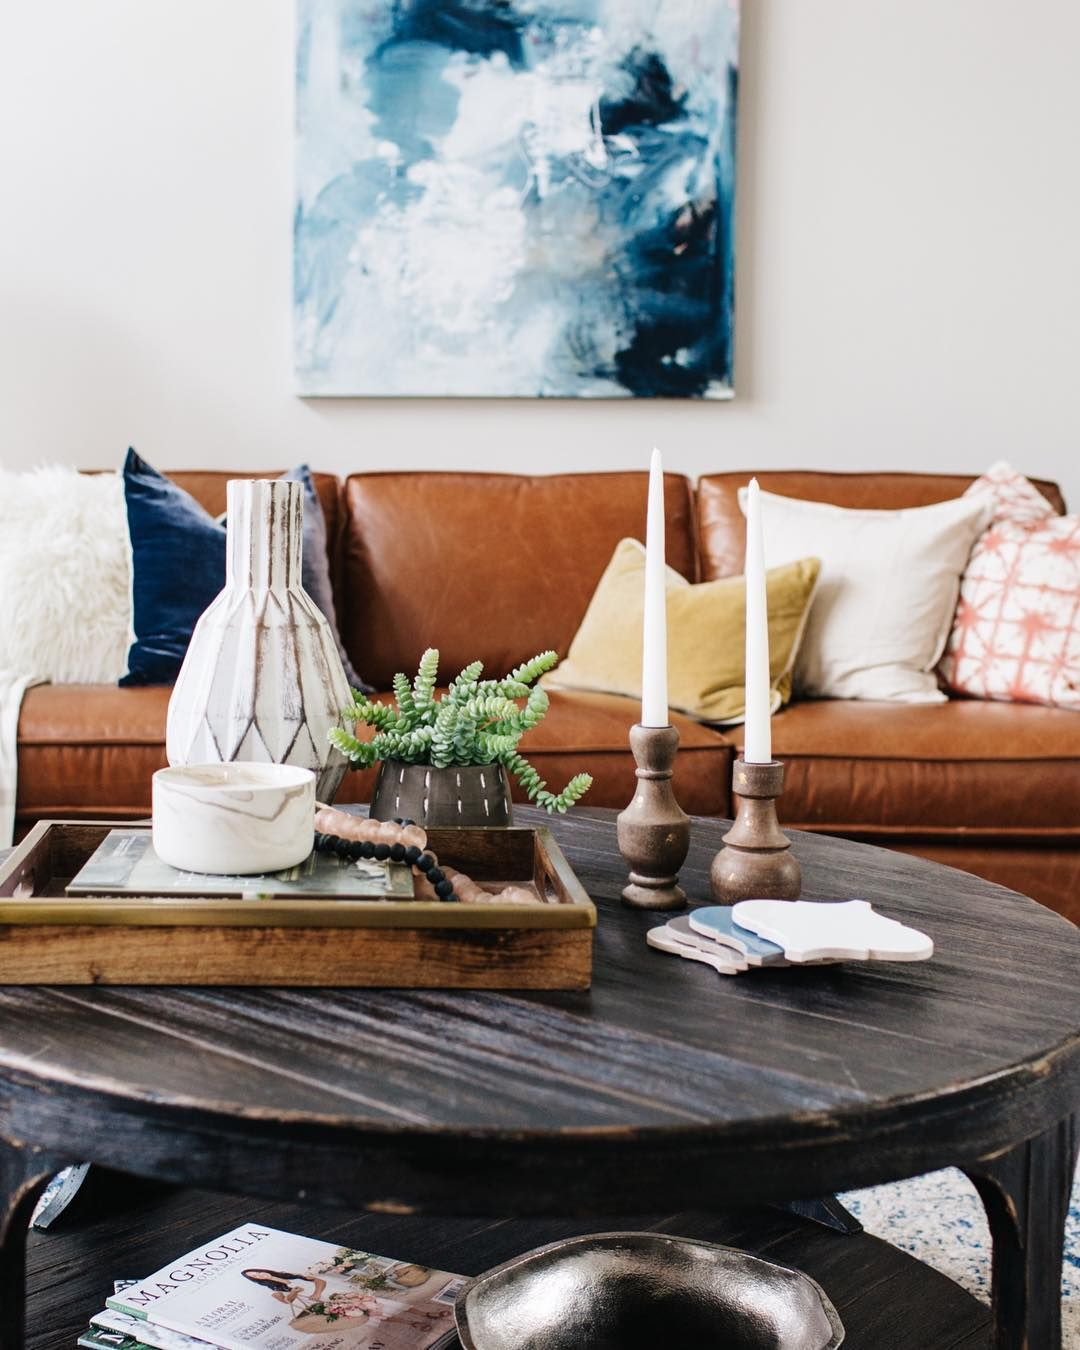 Blissful_design_studio created such a cozy and eclectic